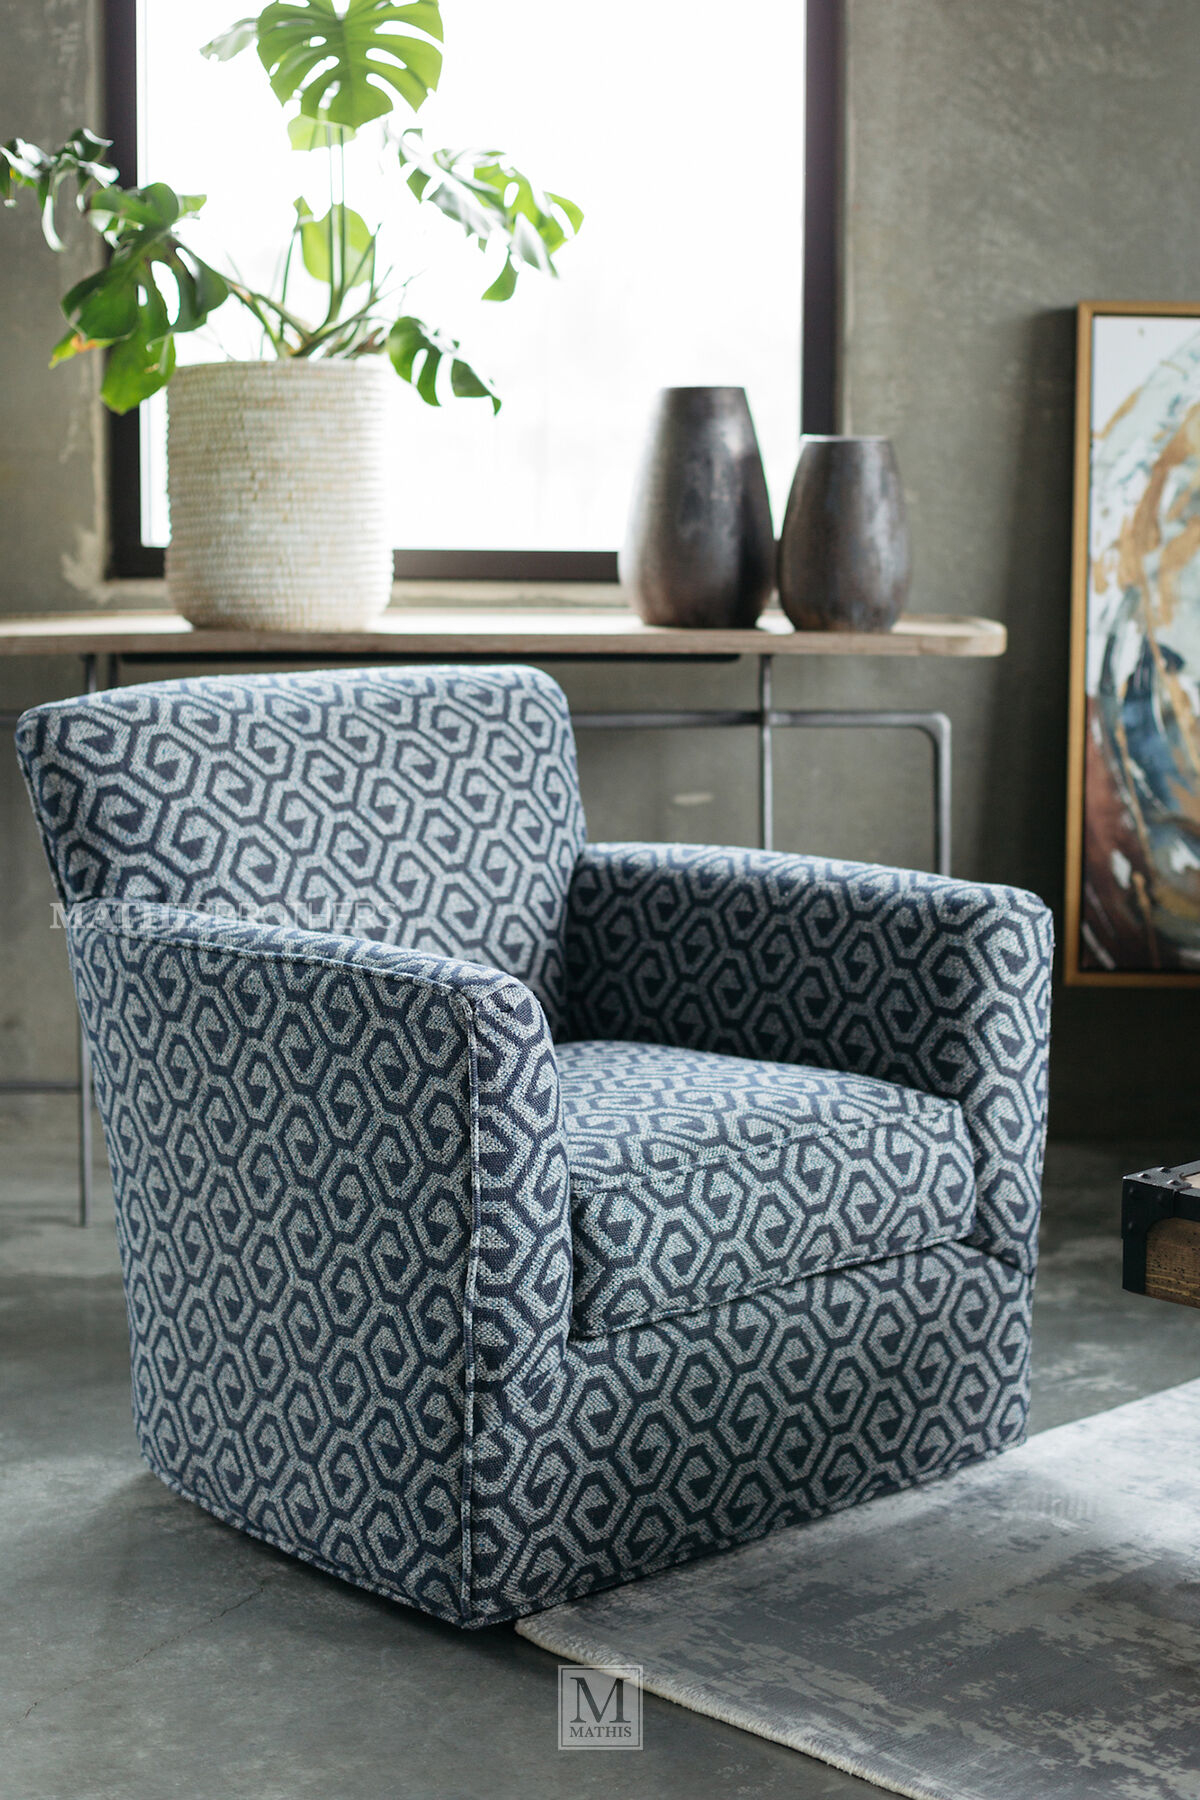 Contemporary Swivel Chairs Geometric Patterned Contemporary 34 Quot Swivel Chair In Gray